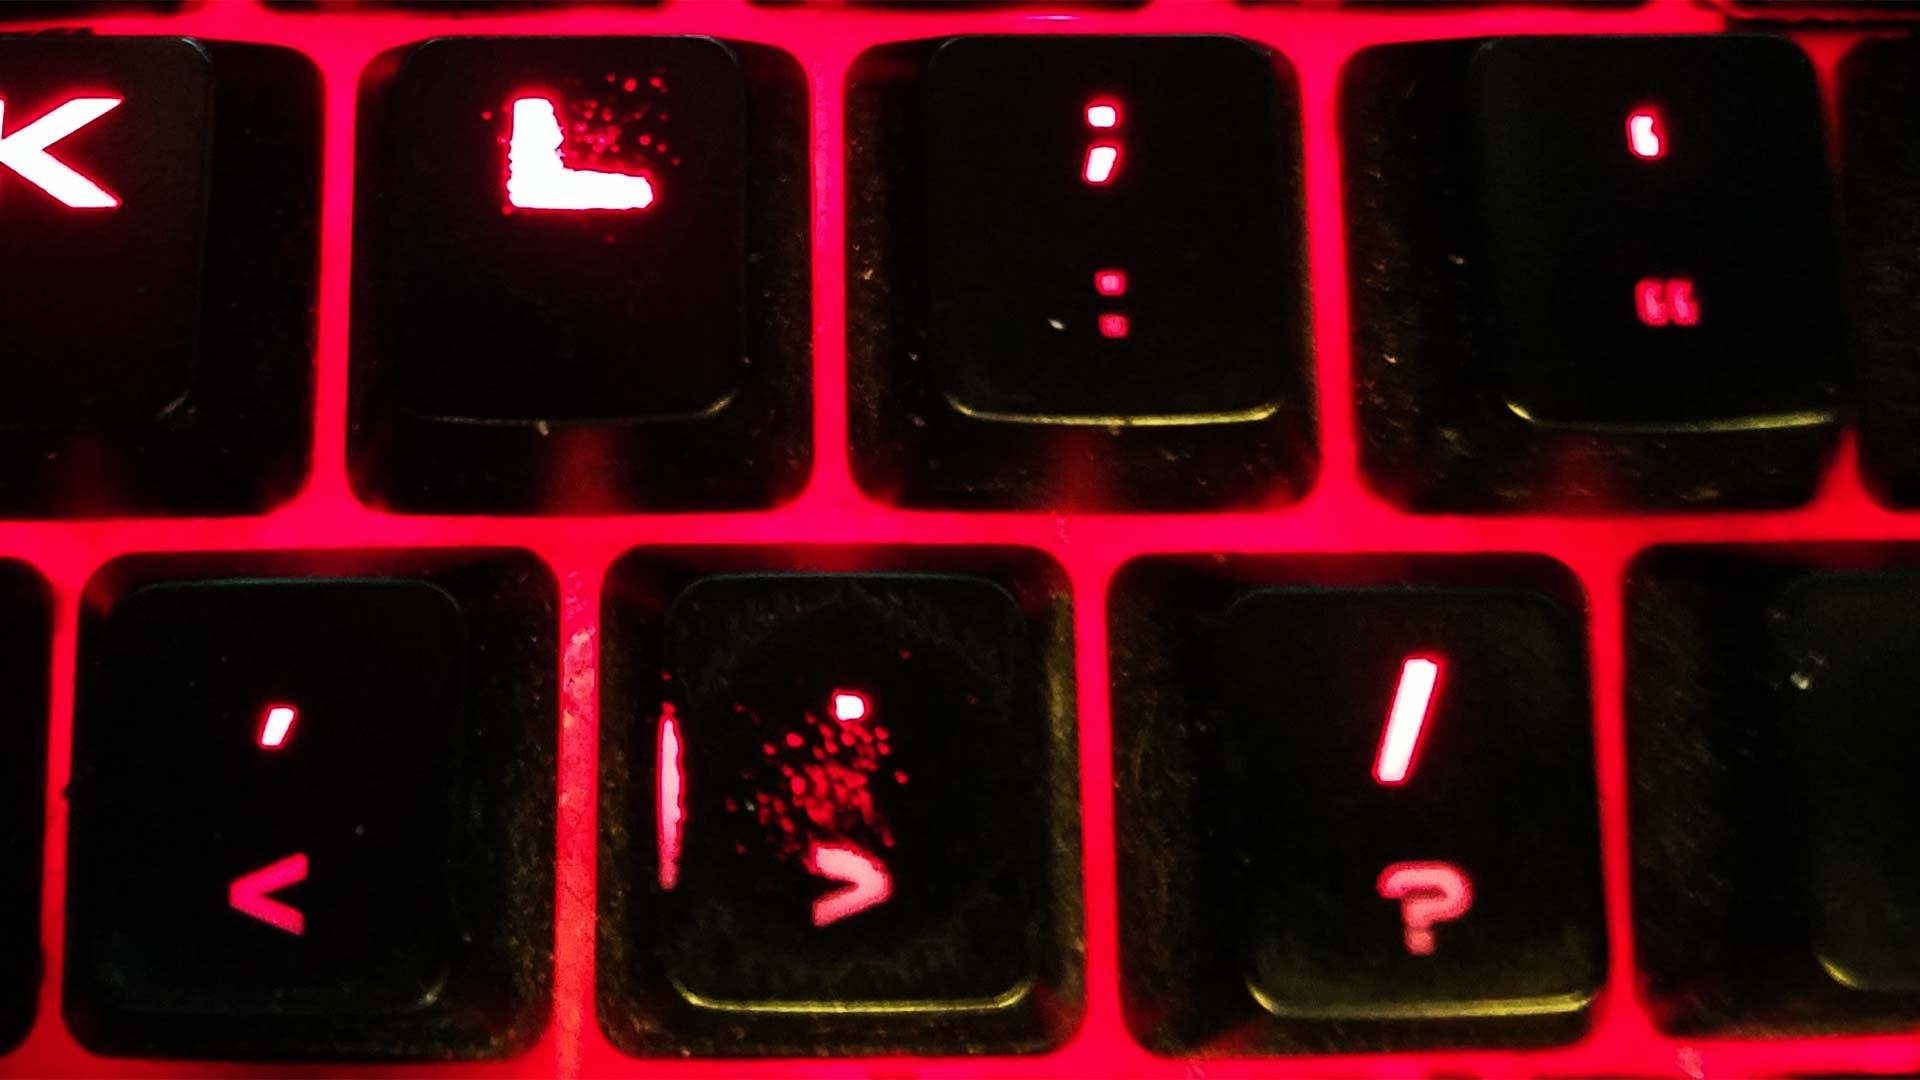 Corsair K70 - Doubleshot Key failure.